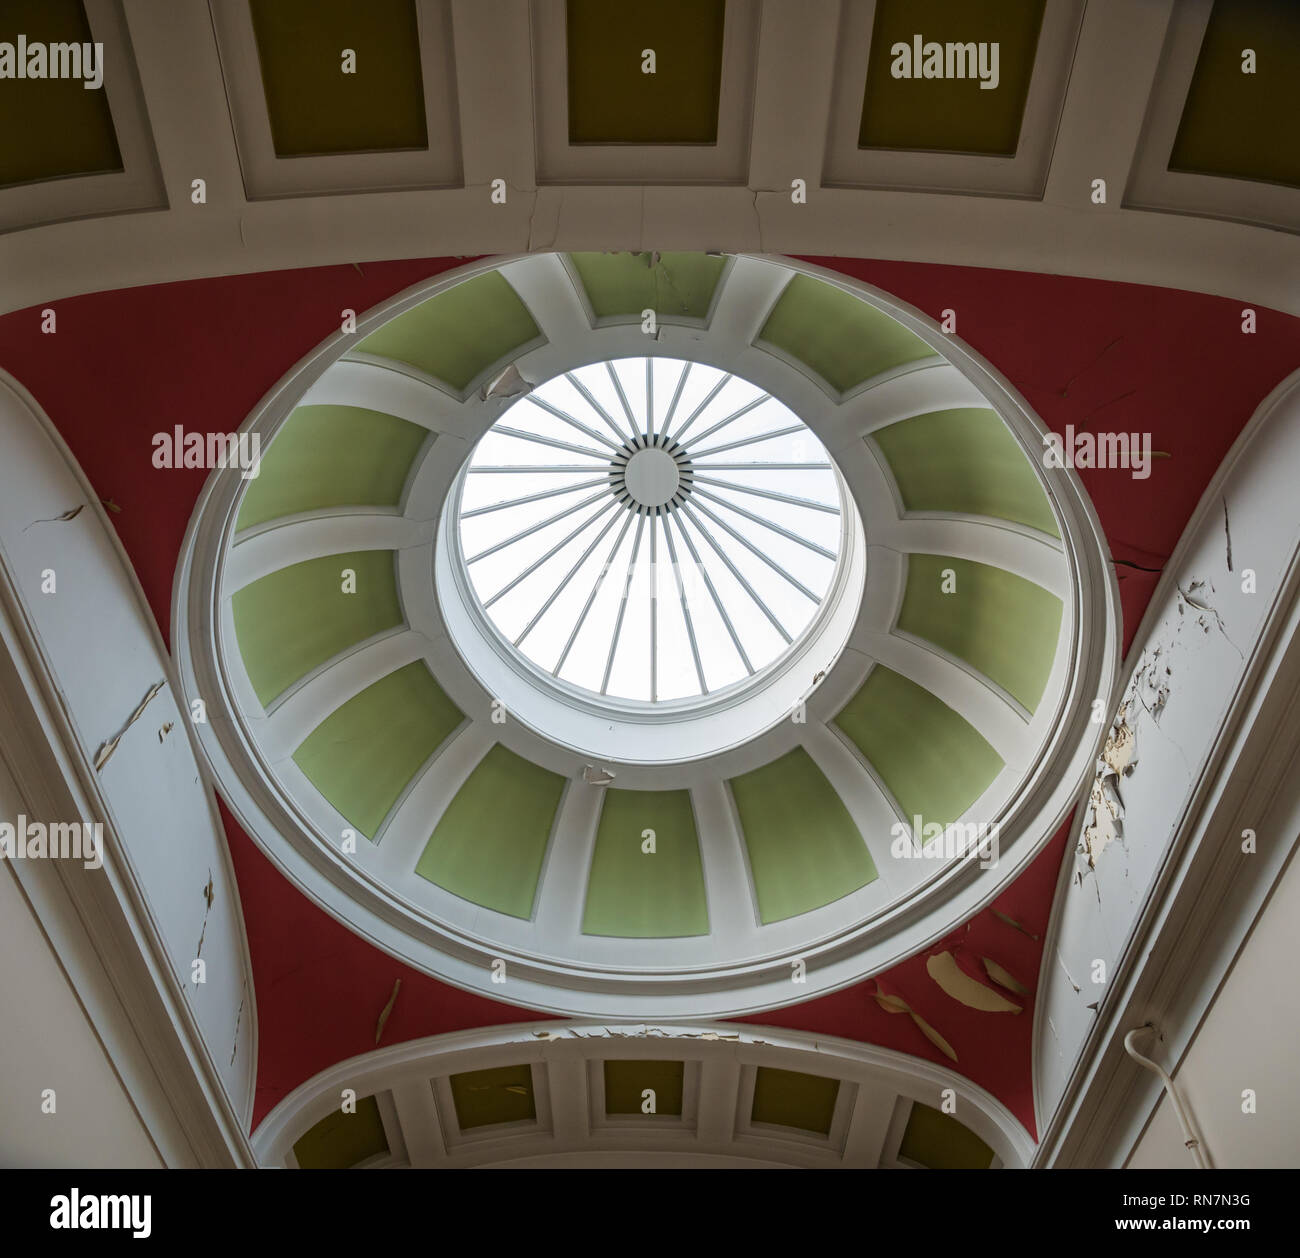 Glass dome cupola ceiling with flaking paint in need of refurbishment, Leith Custom House, Edinburgh, Scotland, UK - Stock Image